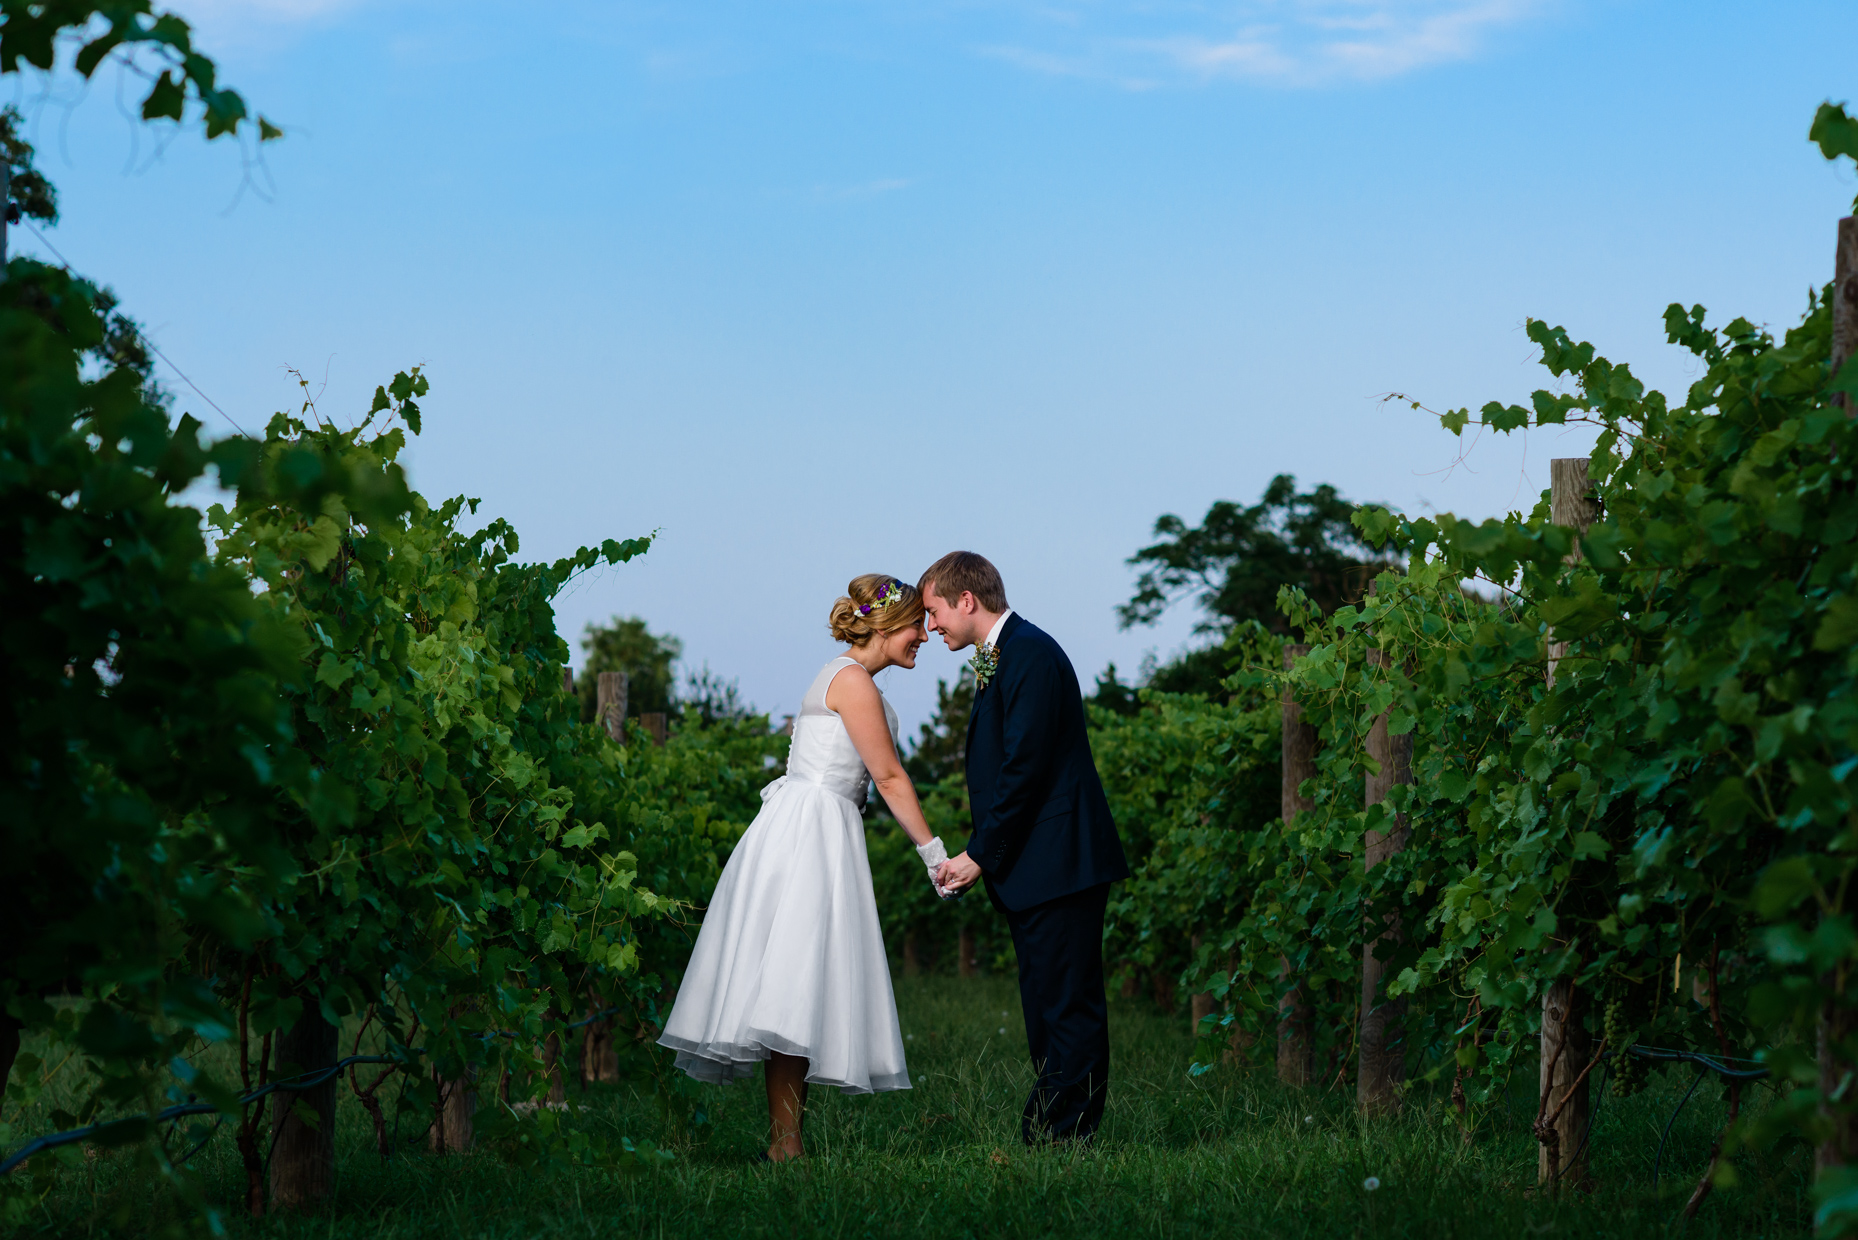 austin-wedding-photographers-vineyard-portraits-outdoor-summer-bride-groom